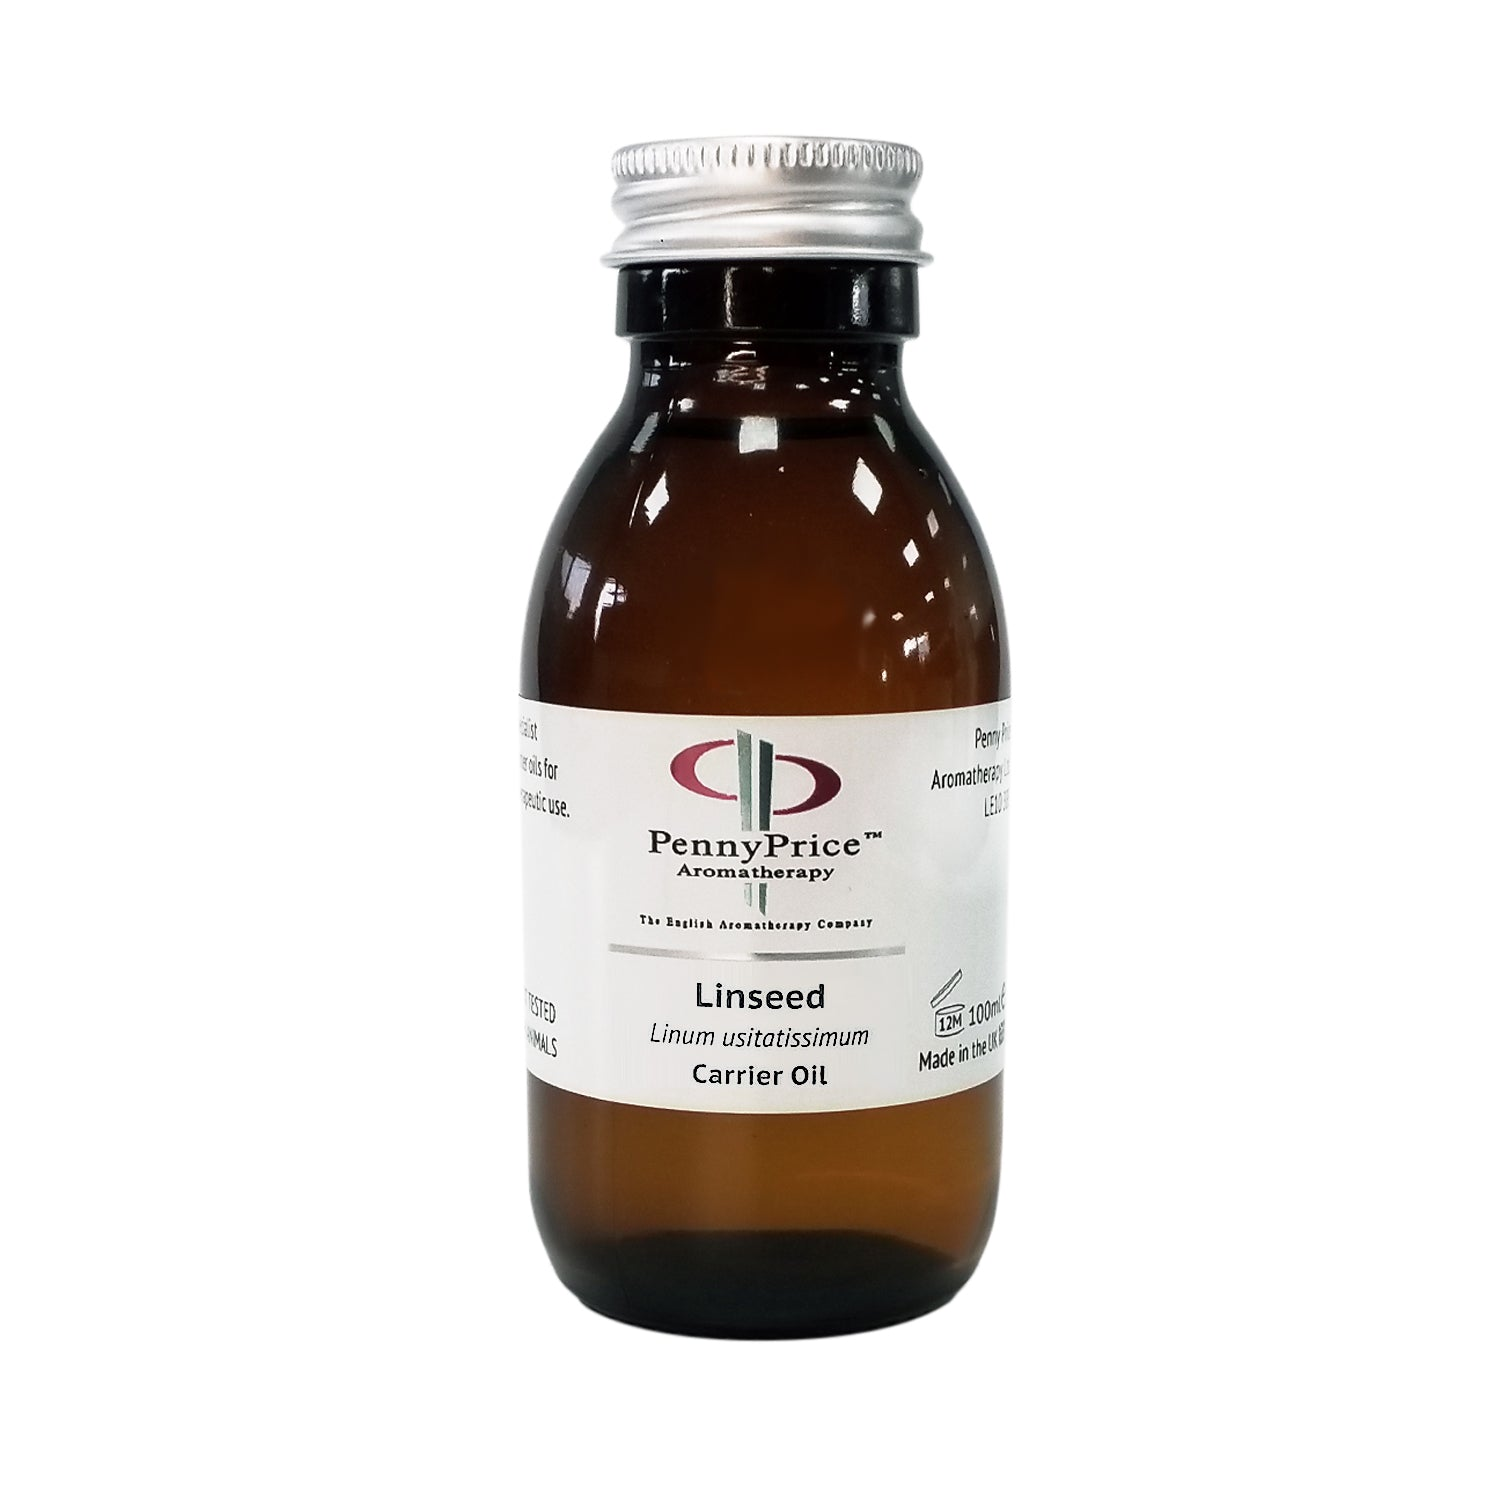 Linseed Carrier Oil